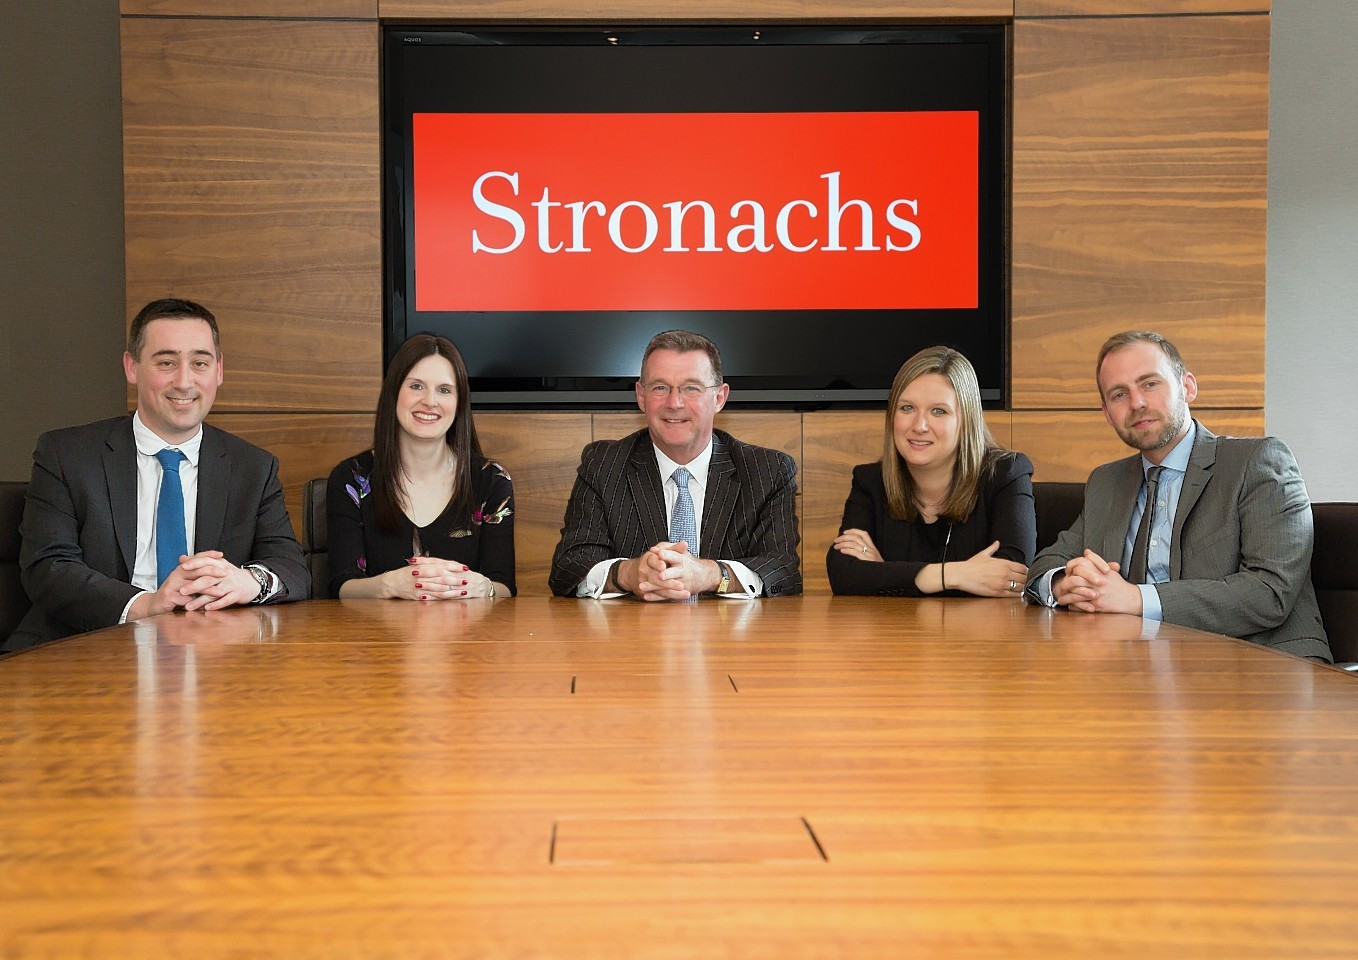 The new Stronachs partners: (L-R) Ross Linn, Jaclyn Russell, David Rennie, Emma Stephen and Bob McDiarmid